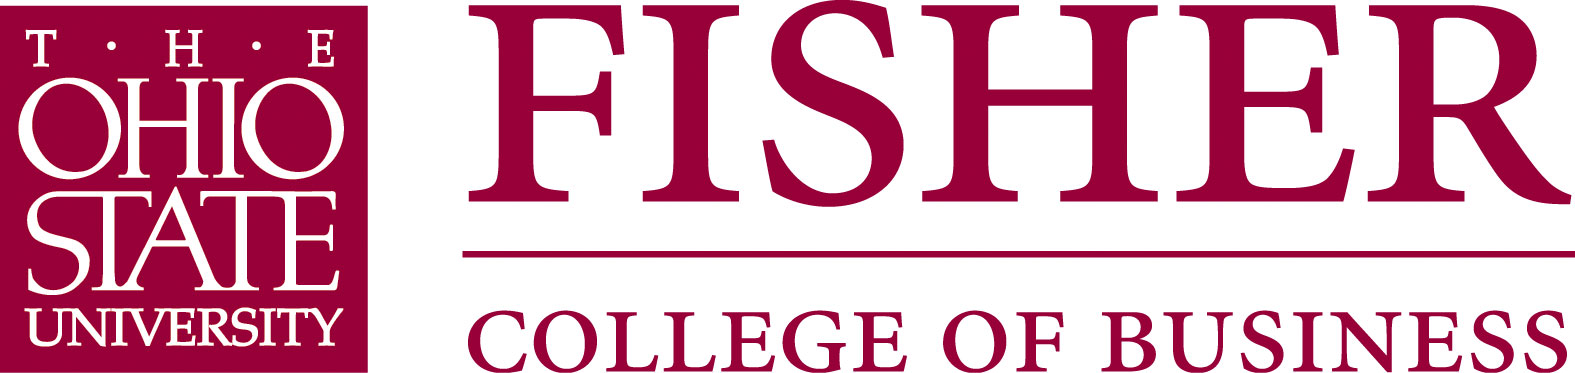 osu fisher mba essays Following up on the 2017-2018 osu fisher essay questions, we wanted to offer some guidance to applicantslet's take a closer look at each essay 2017-2018 osu fisher mba essay topic analysis.